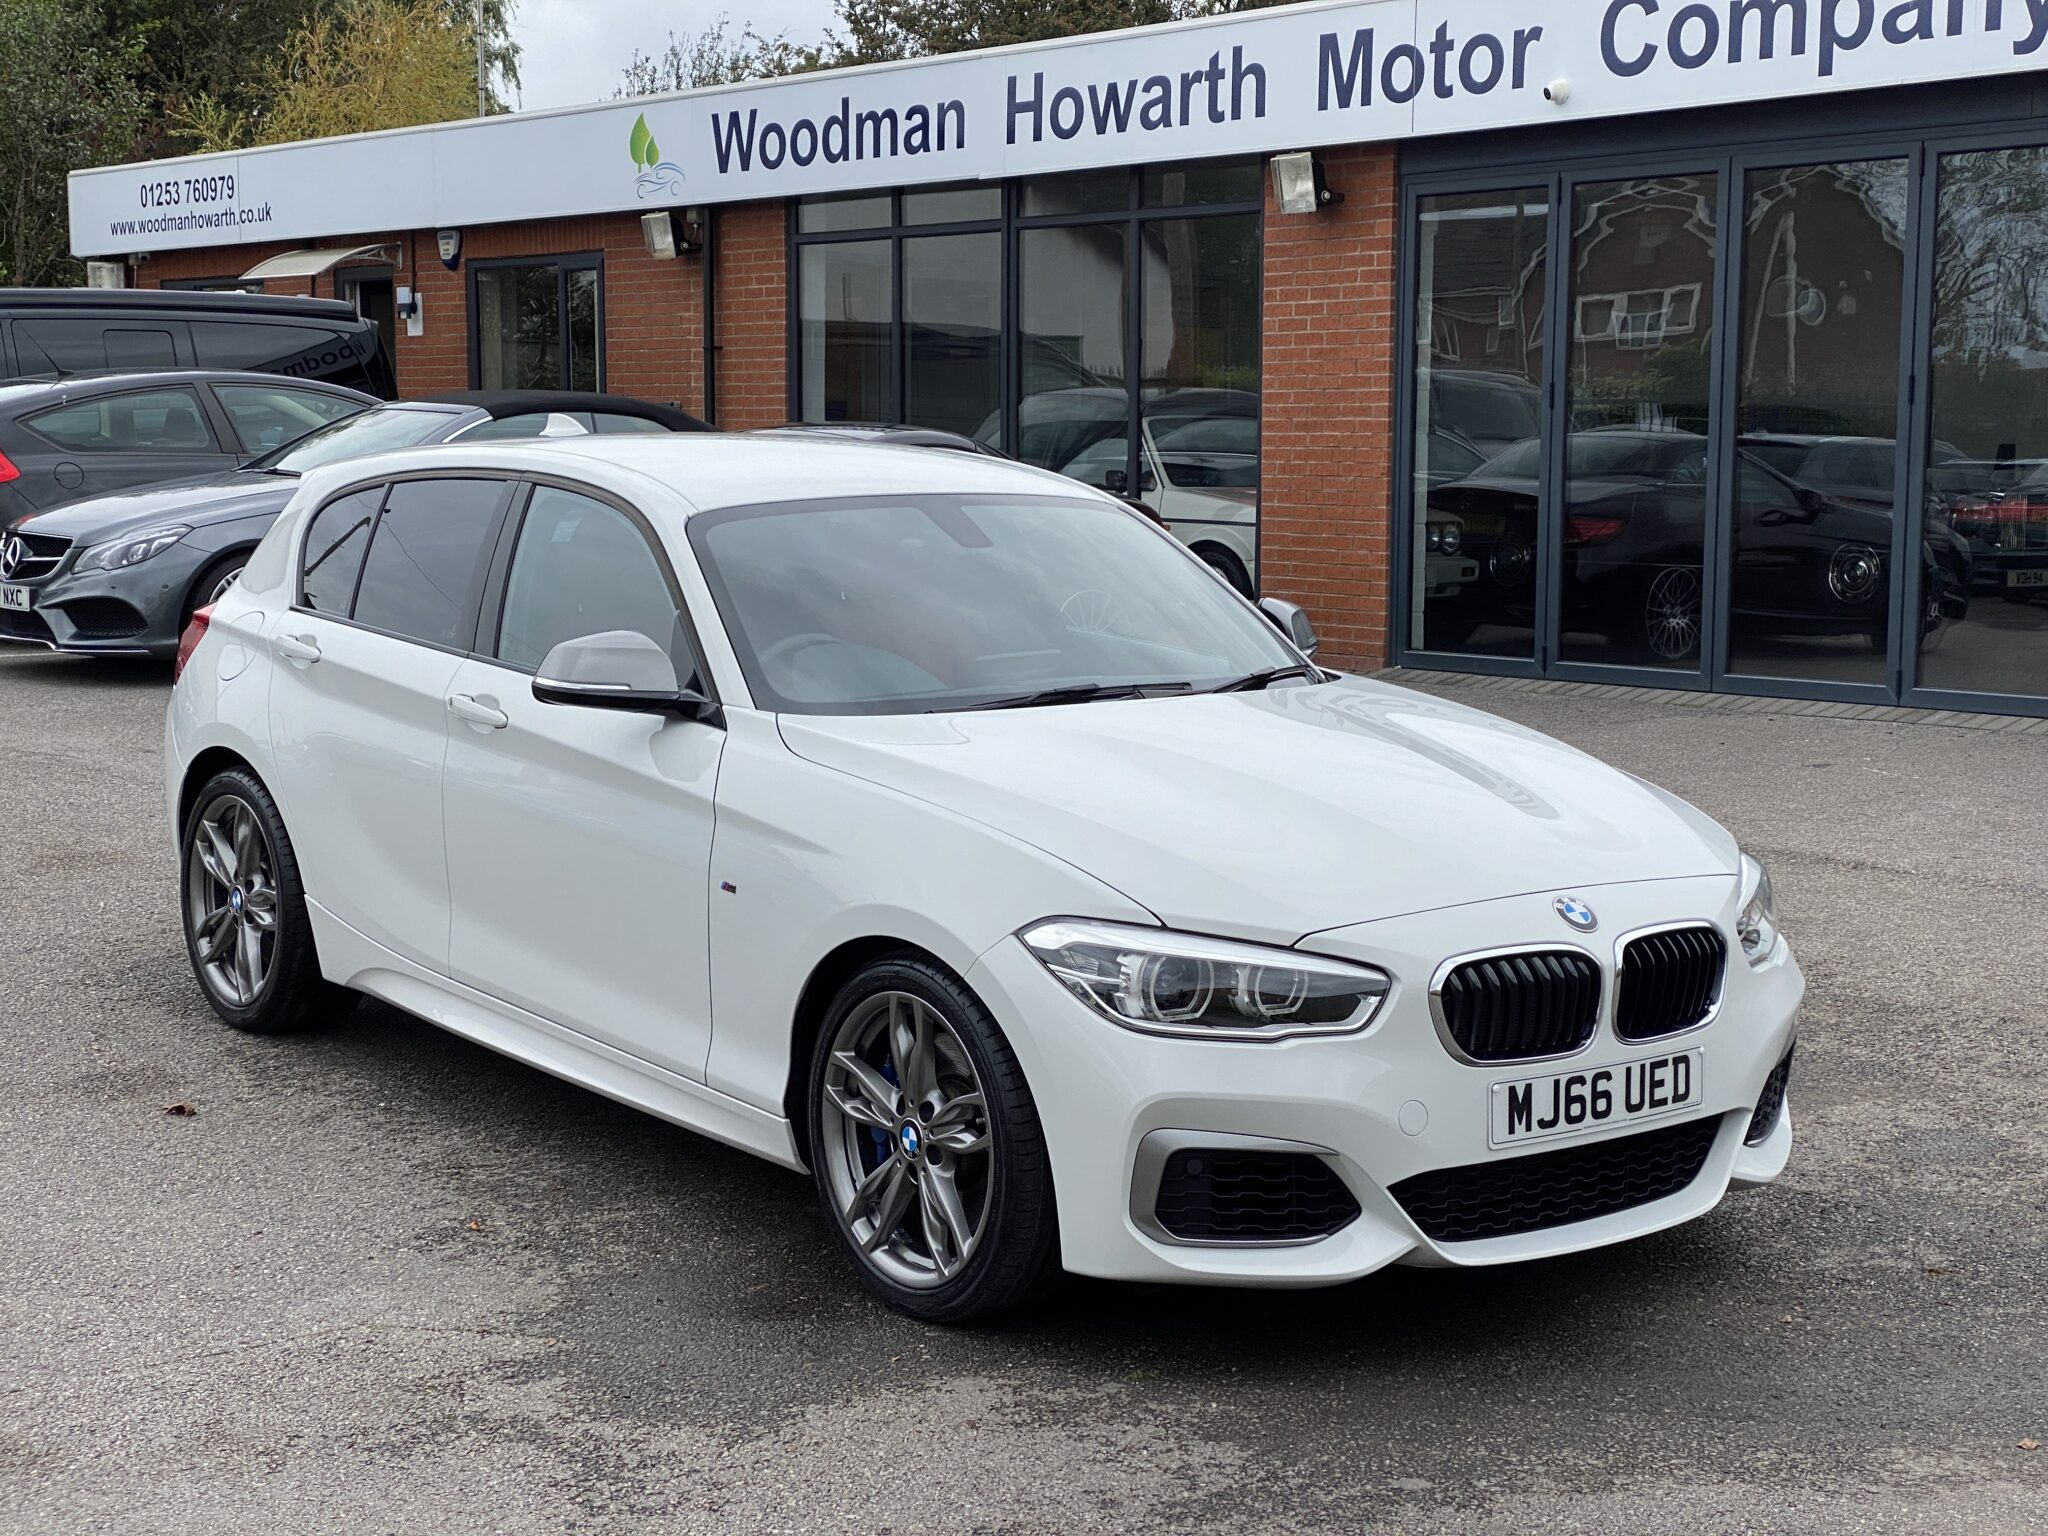 2016 66 BMW M140i 5 DR 6 SPEED MANUAL 1 Owner FSH Low Miles High Spec